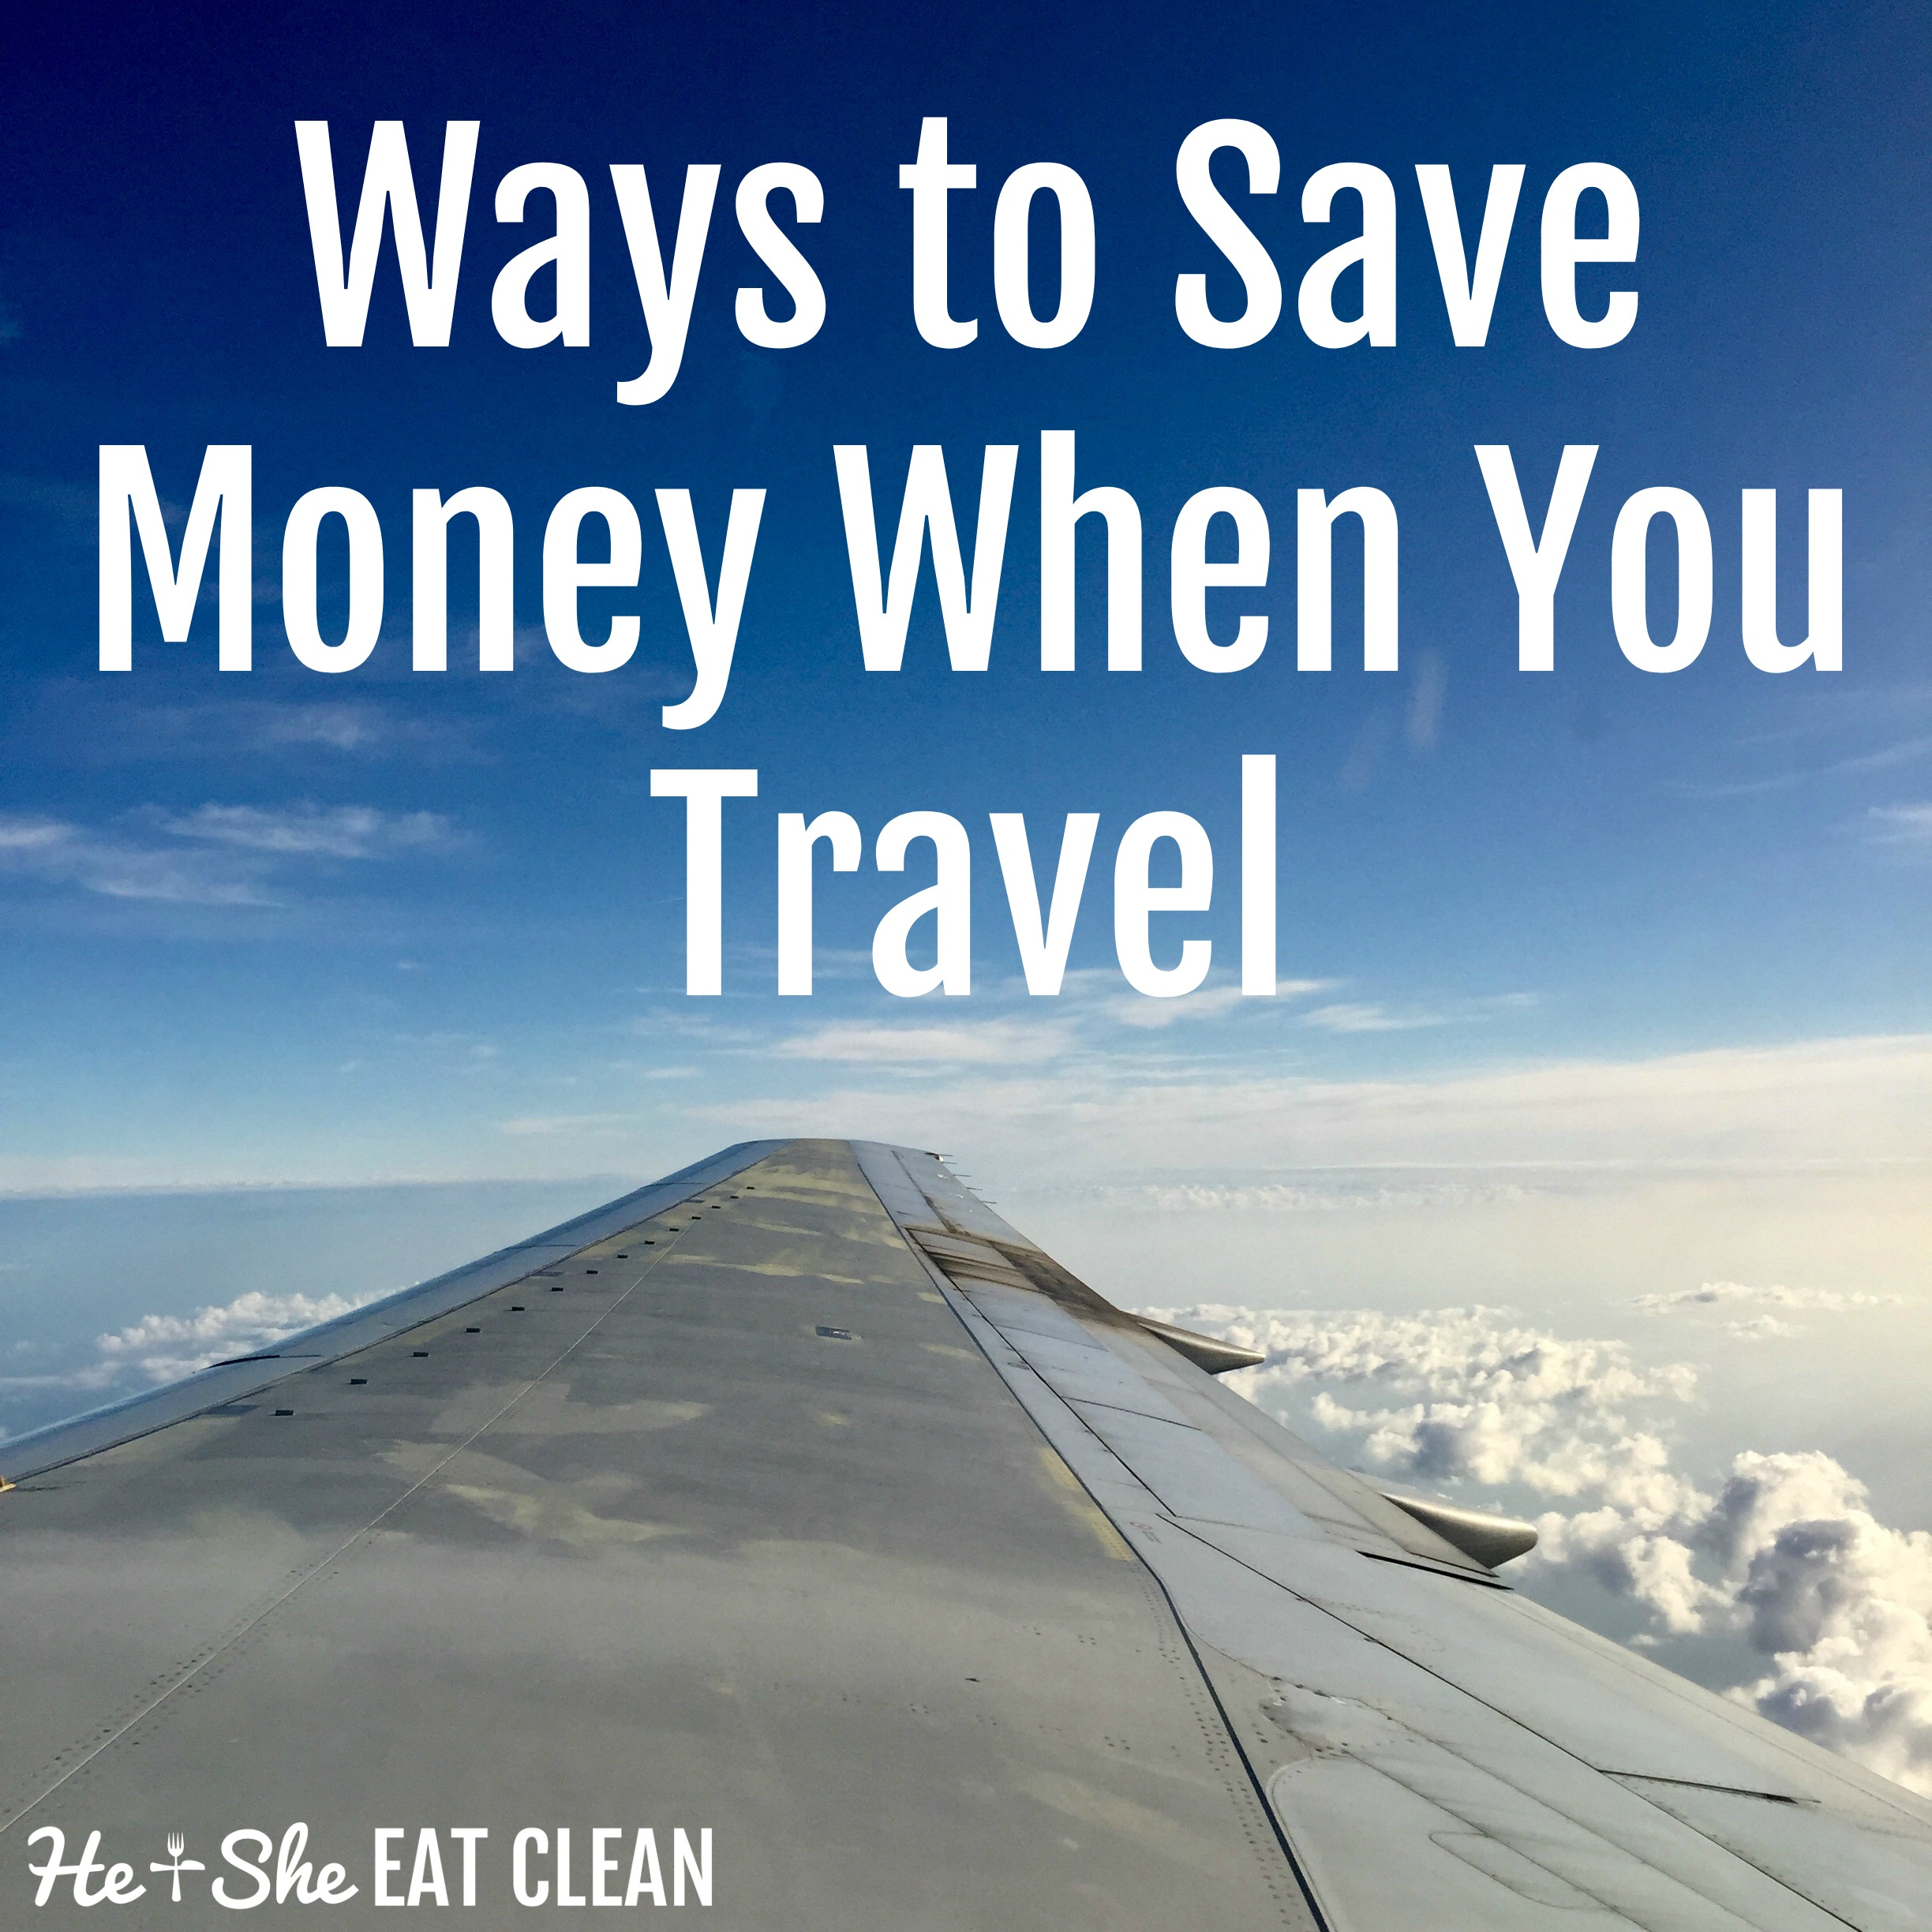 Ways to Save Money When You Travel